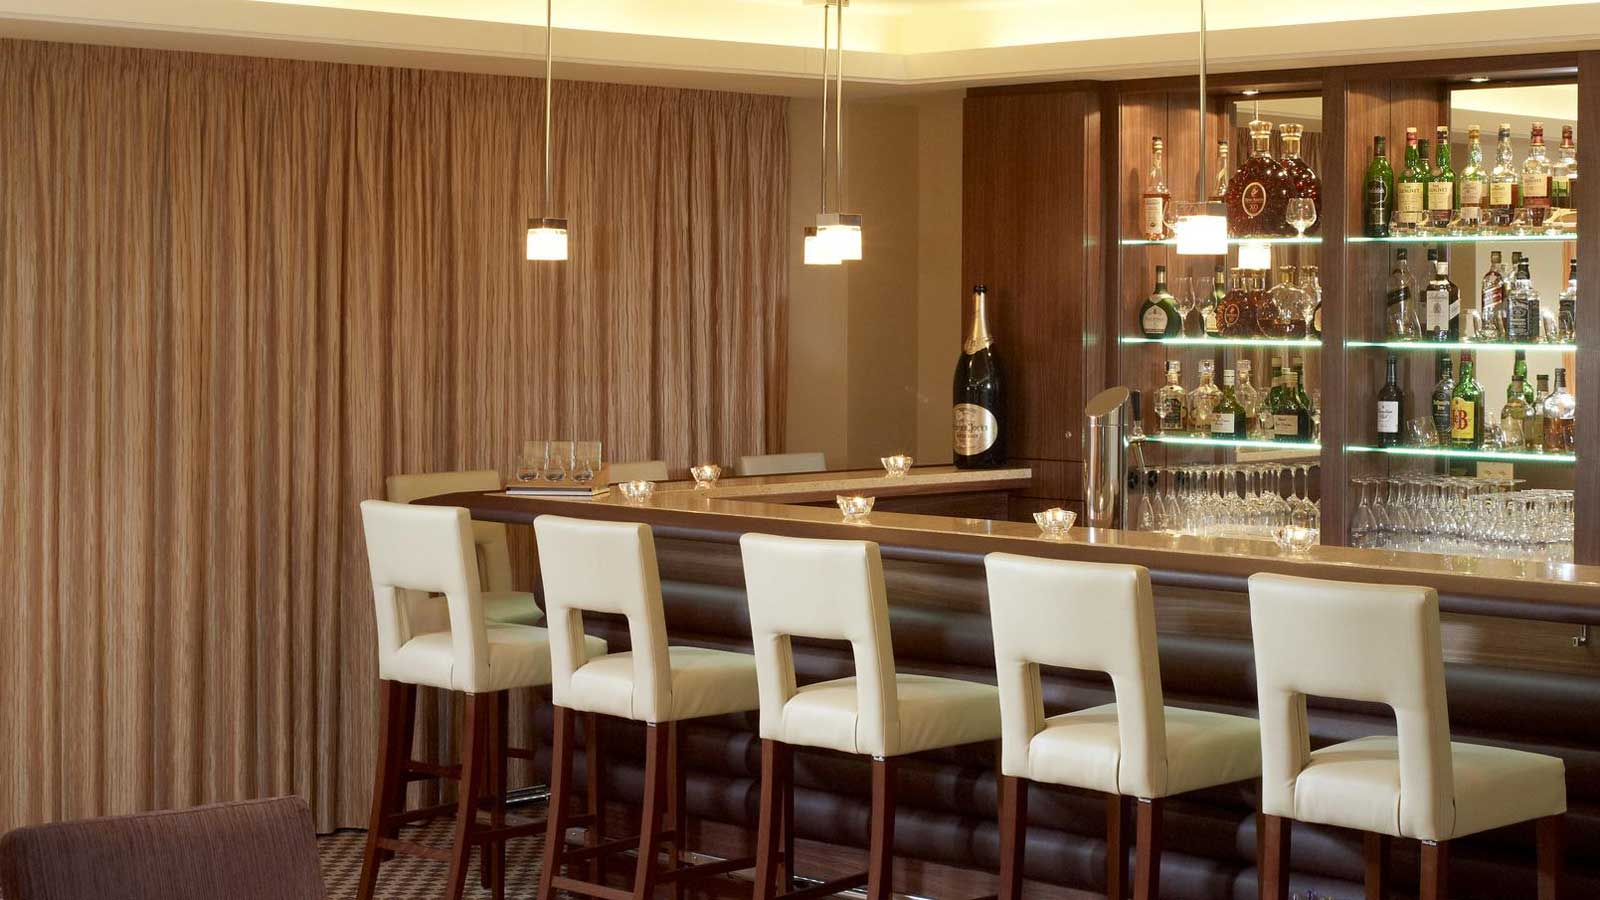 Sheraton-Zuerich-Neues-Schloss-Hotel-Bar-she118re84384